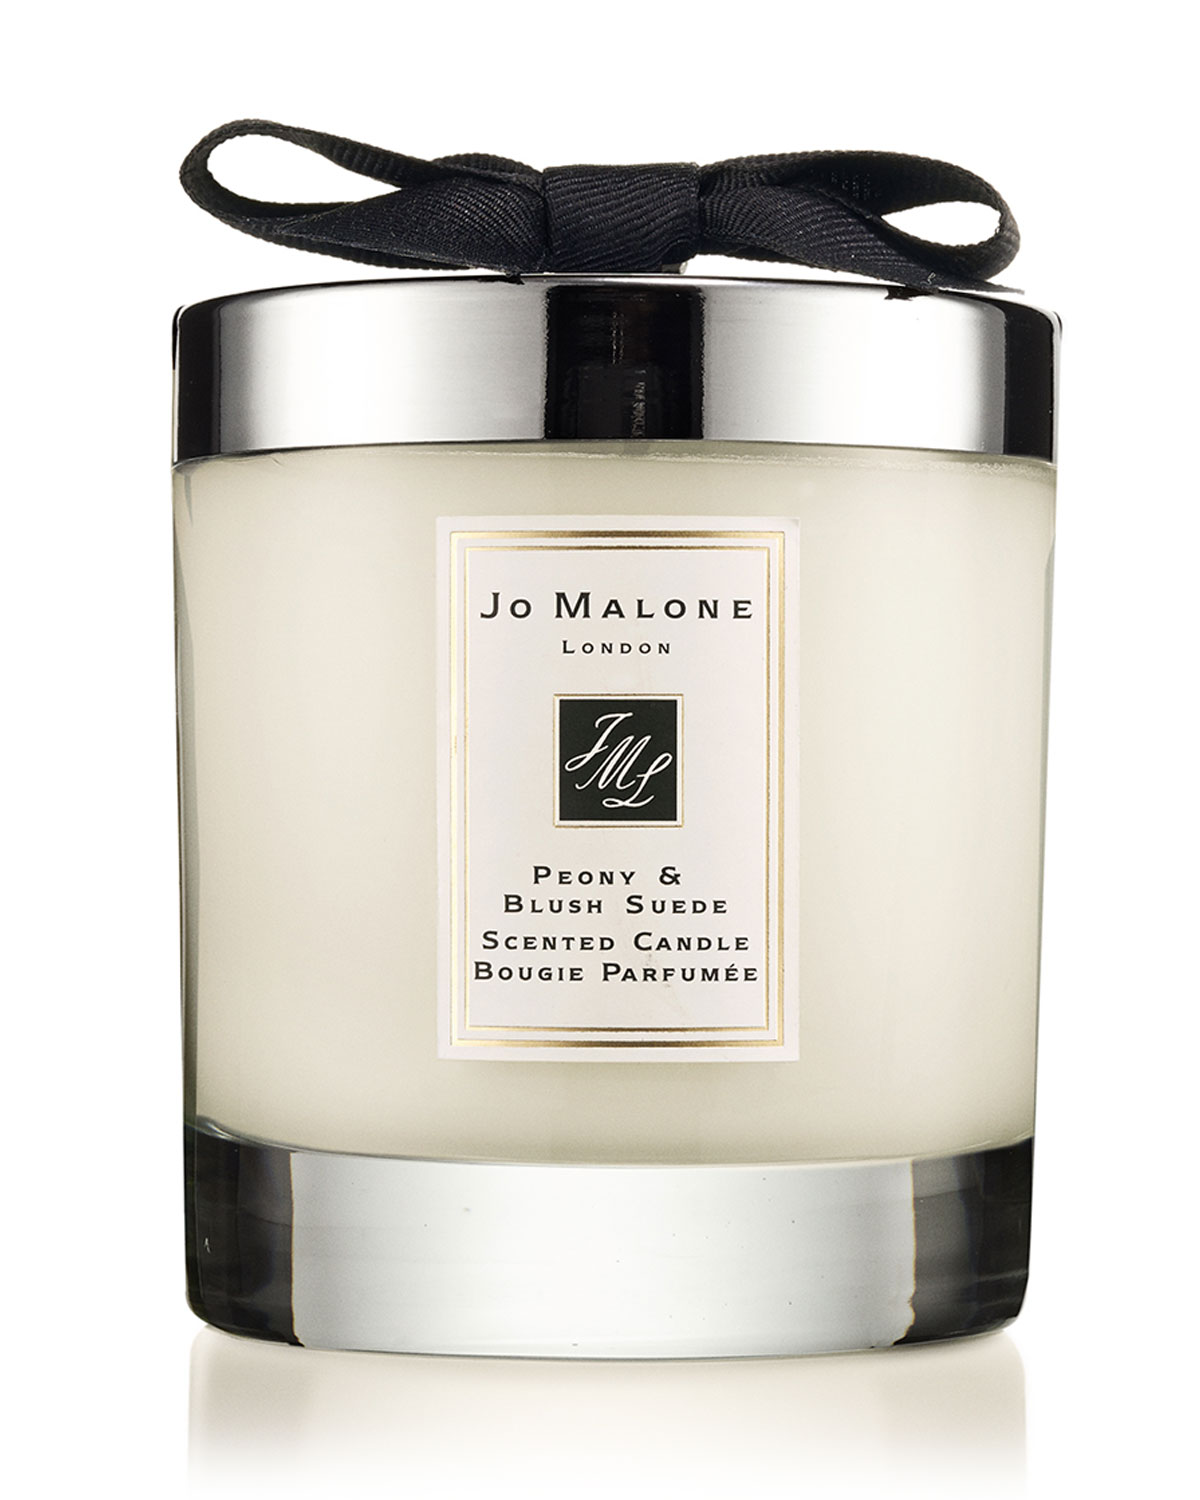 Jo Malone London Peony & Blush Suede Scented Home Candle, 7 Oz